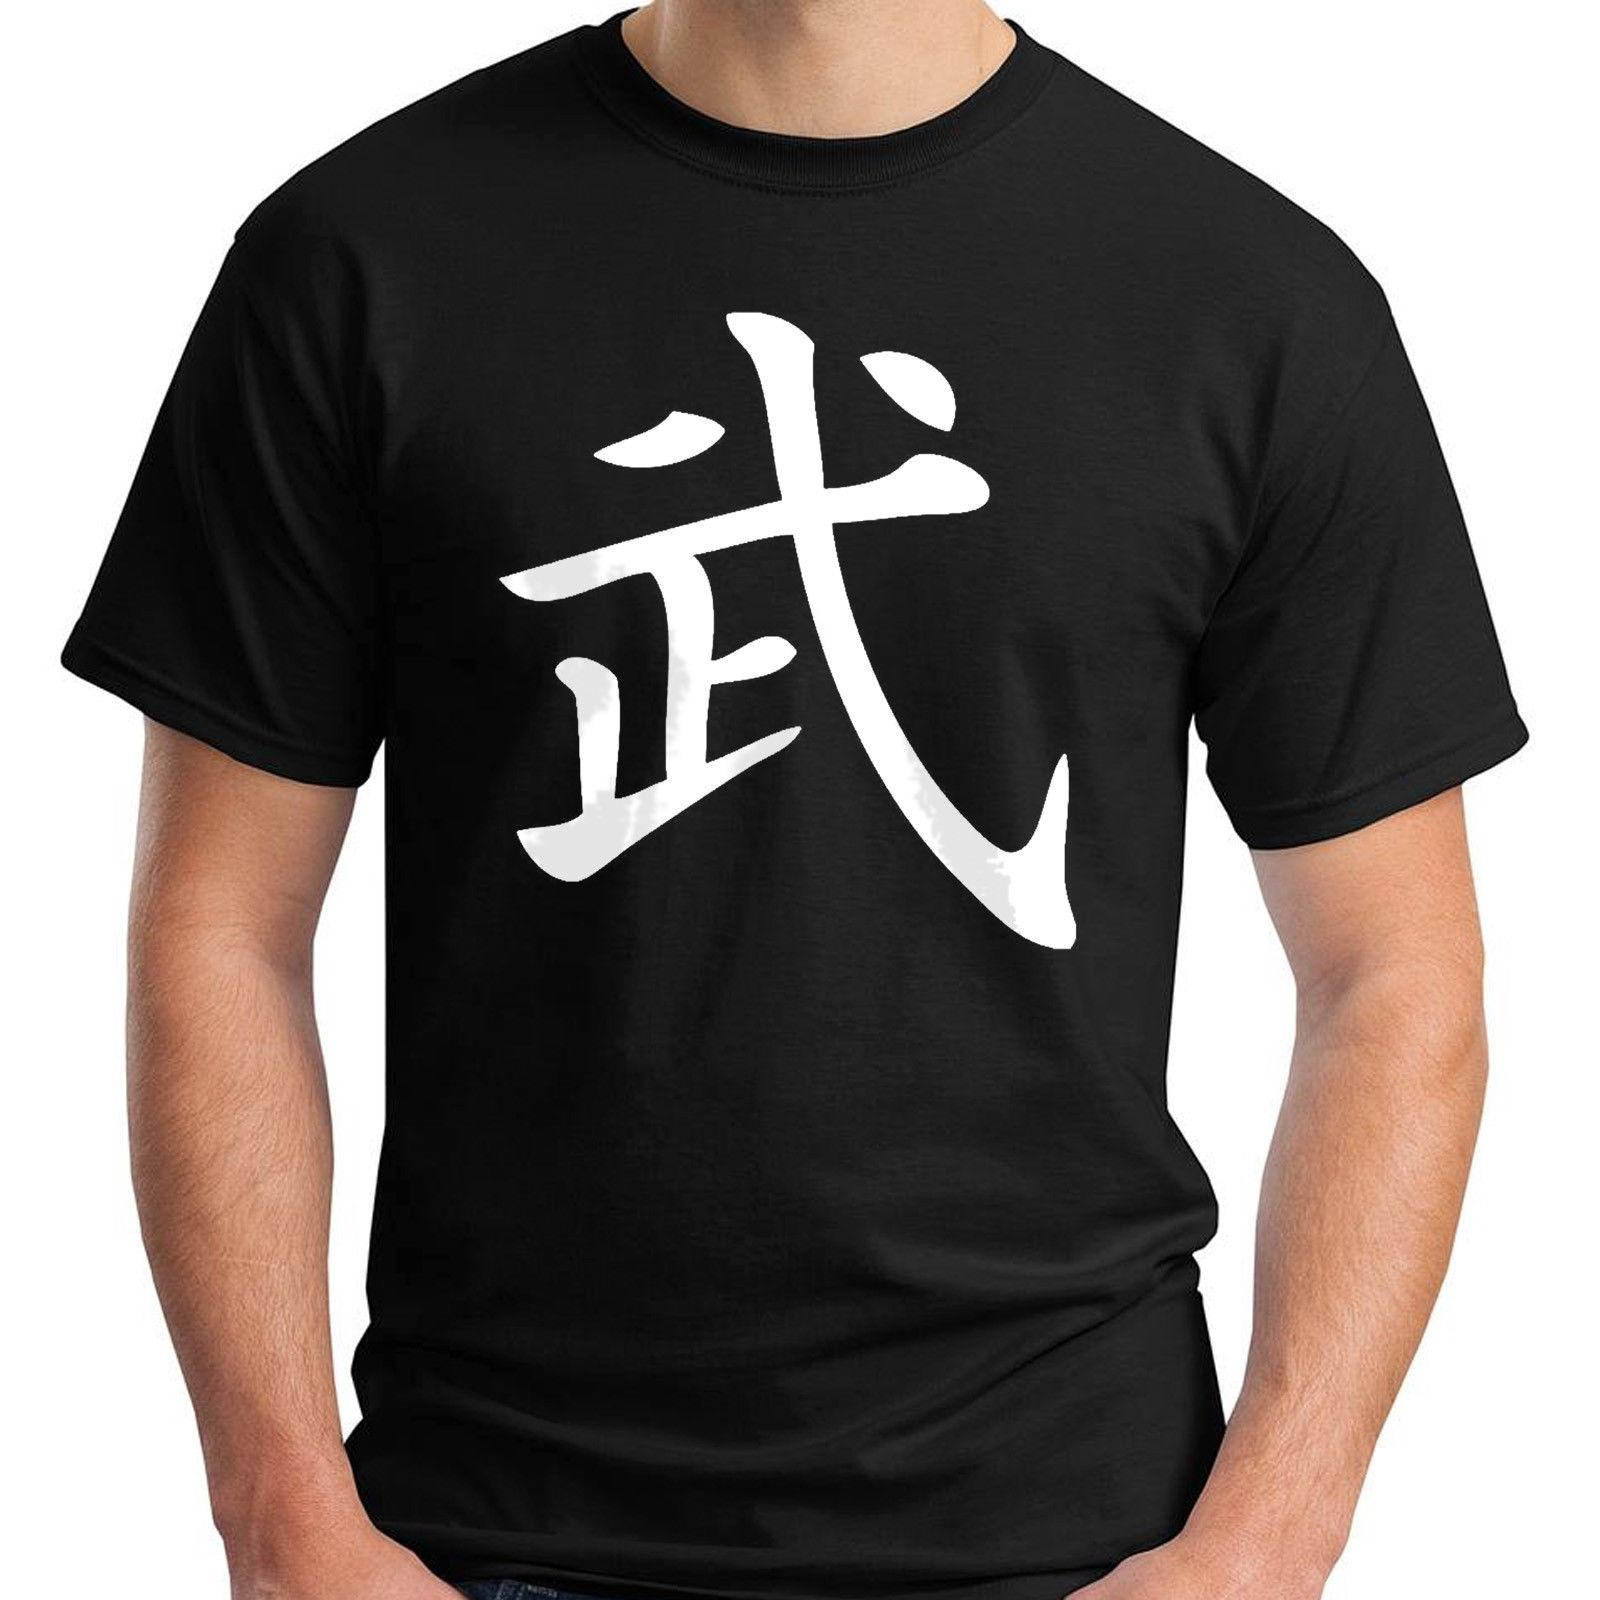 758be776 New Warrior Kanji Black Men's T-Shirt Size S-5XL New Tees Chinese Style  Sleeve Fashion Summer Top Tee Short Sleeve Print T shirt Men